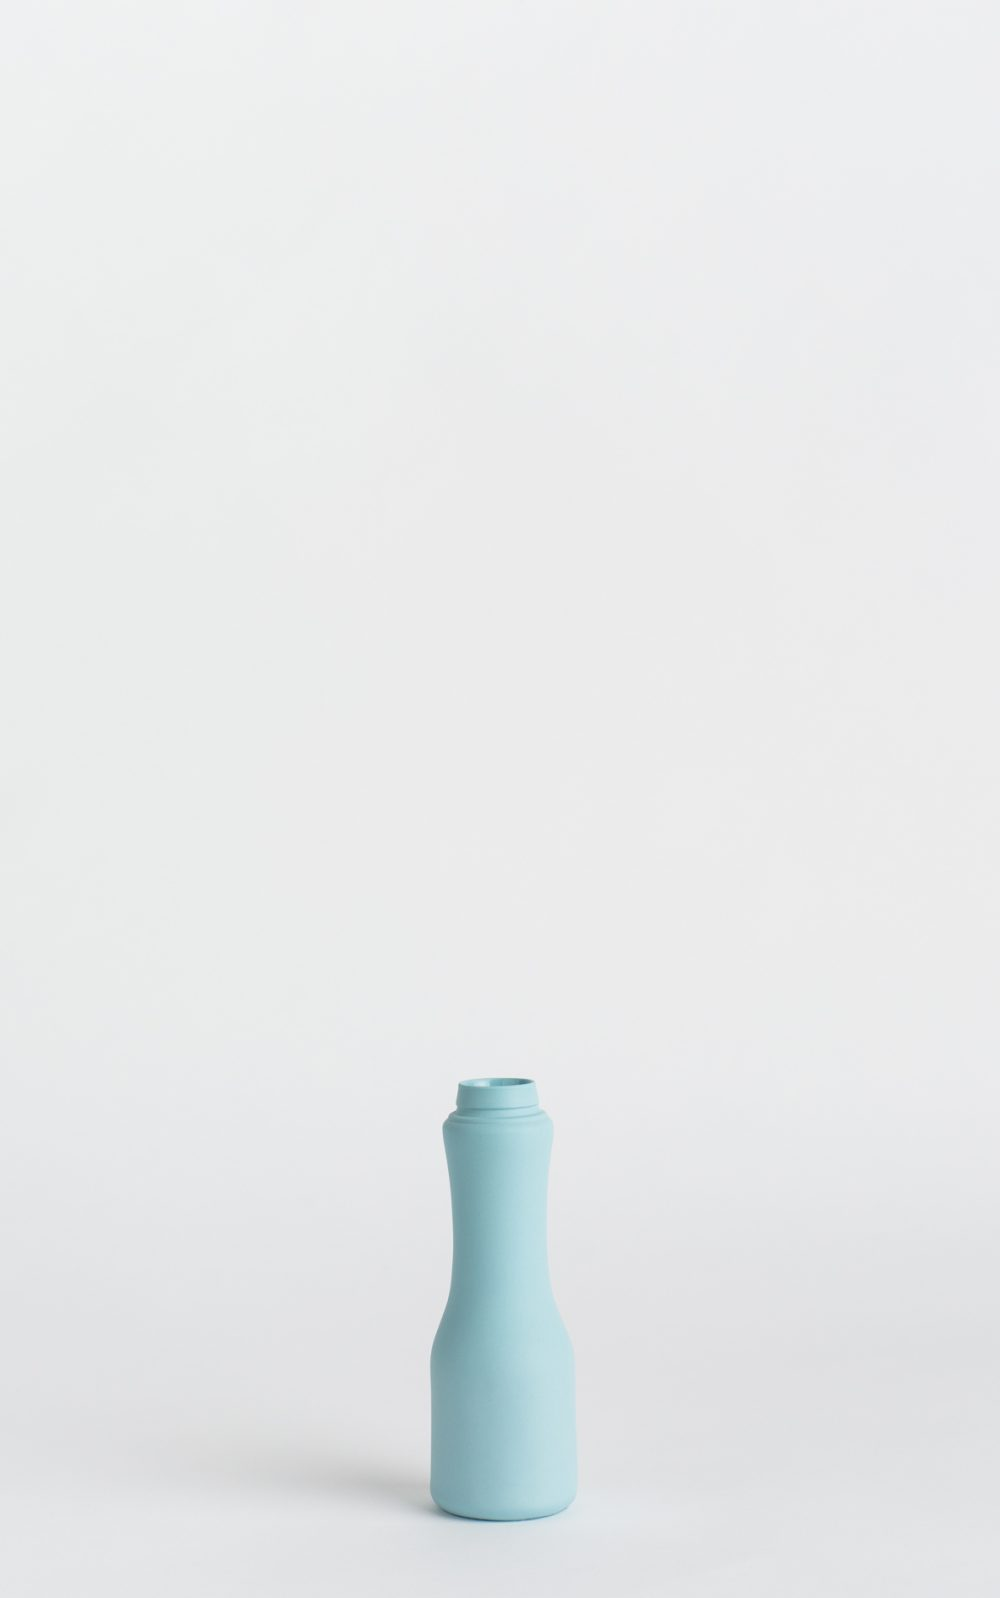 bottle vase #6 light blue